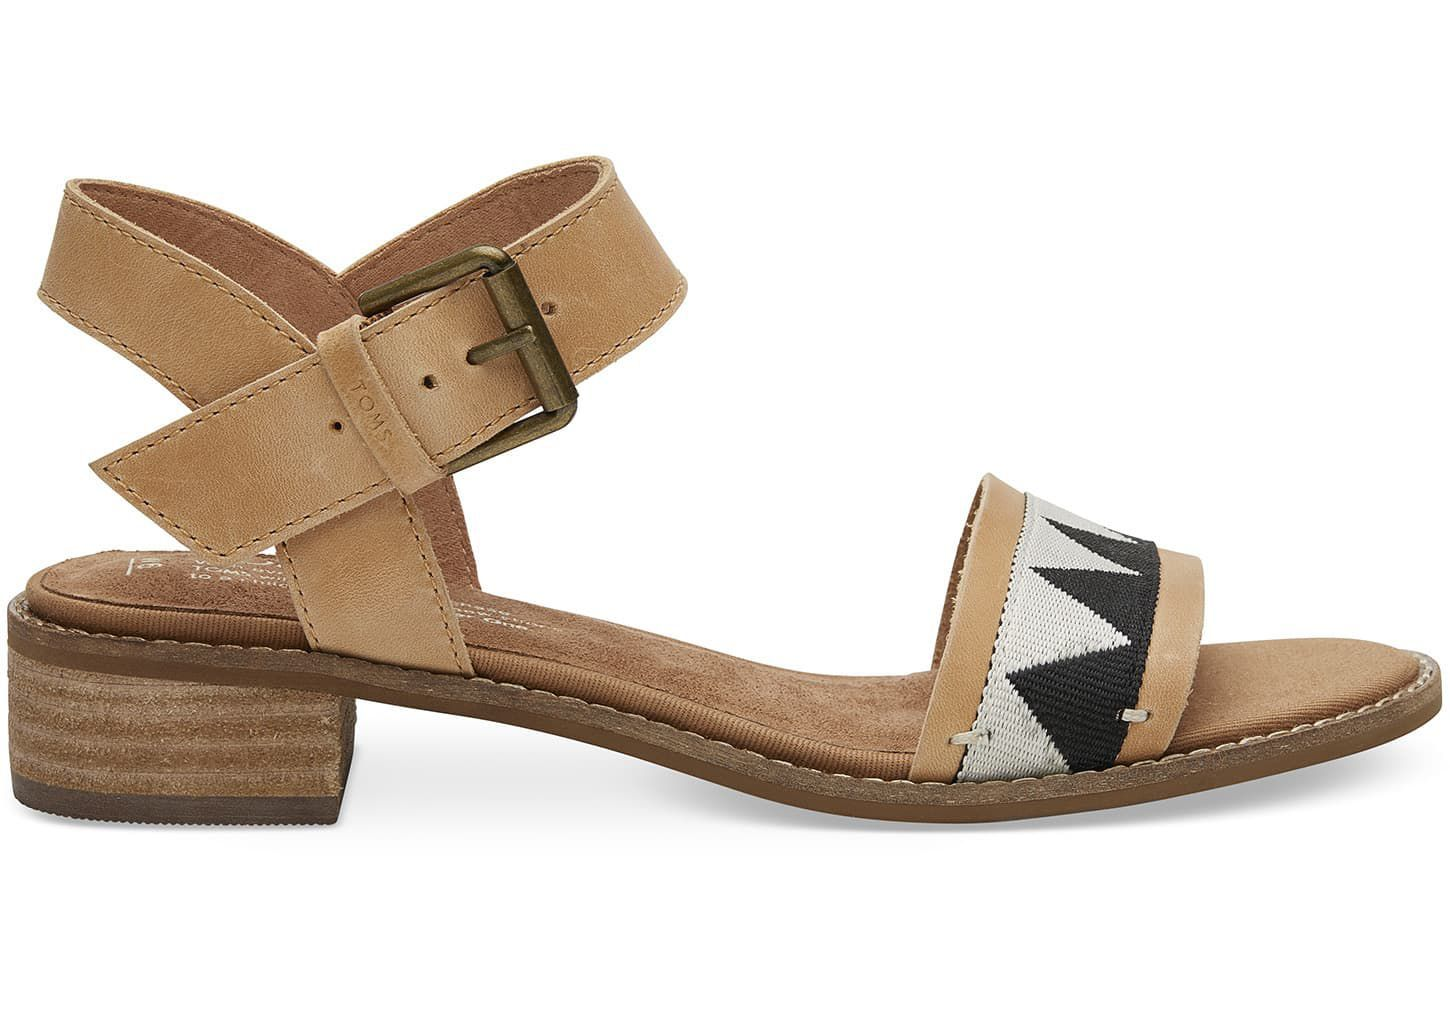 eb840b8daa6 9 Comfortable Sandals That Are Actually Really Cute